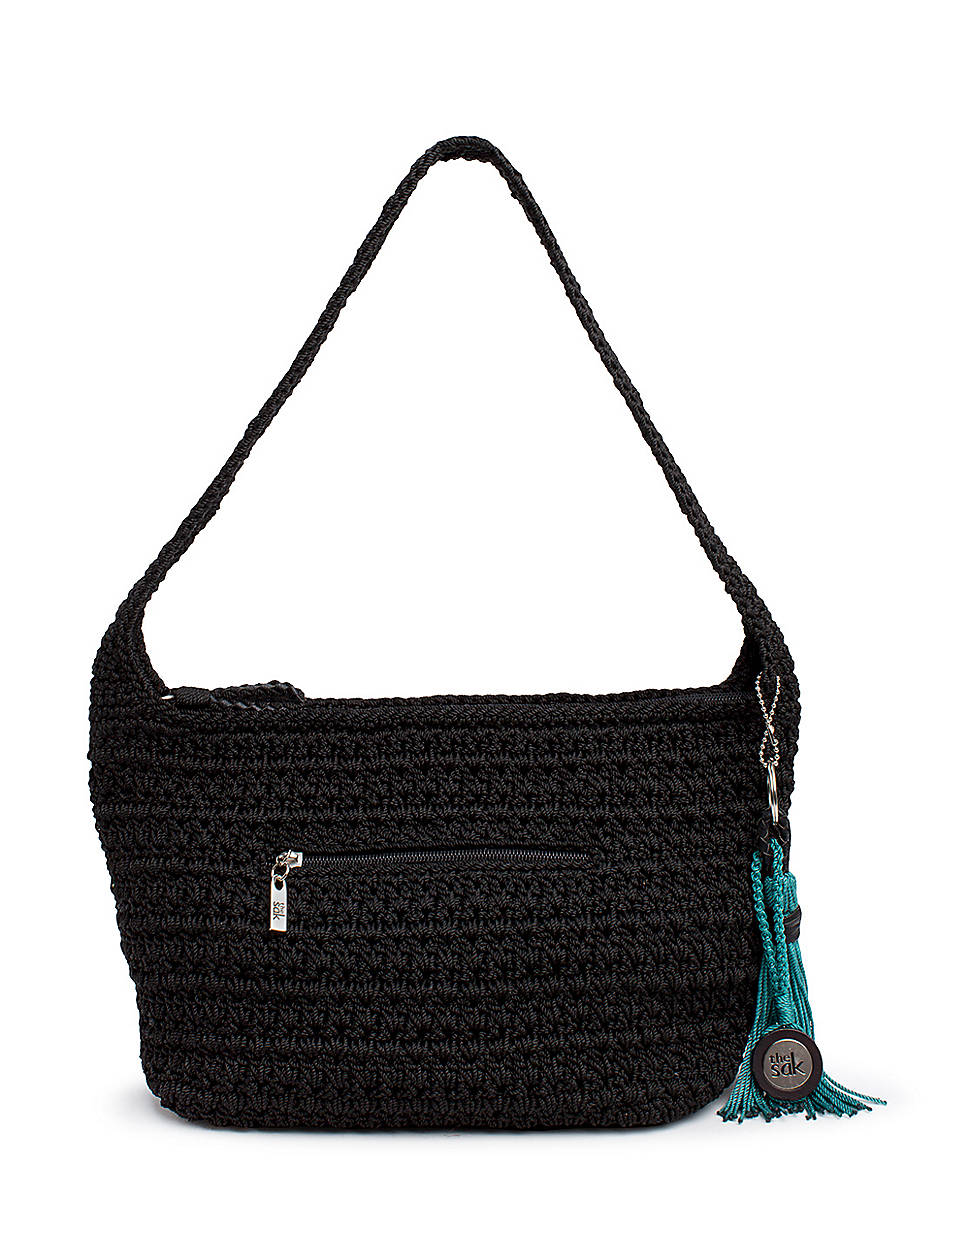 The Sak Bags Crochet : The Sak Casual Classics Crochet Hobo Bag in Black Lyst